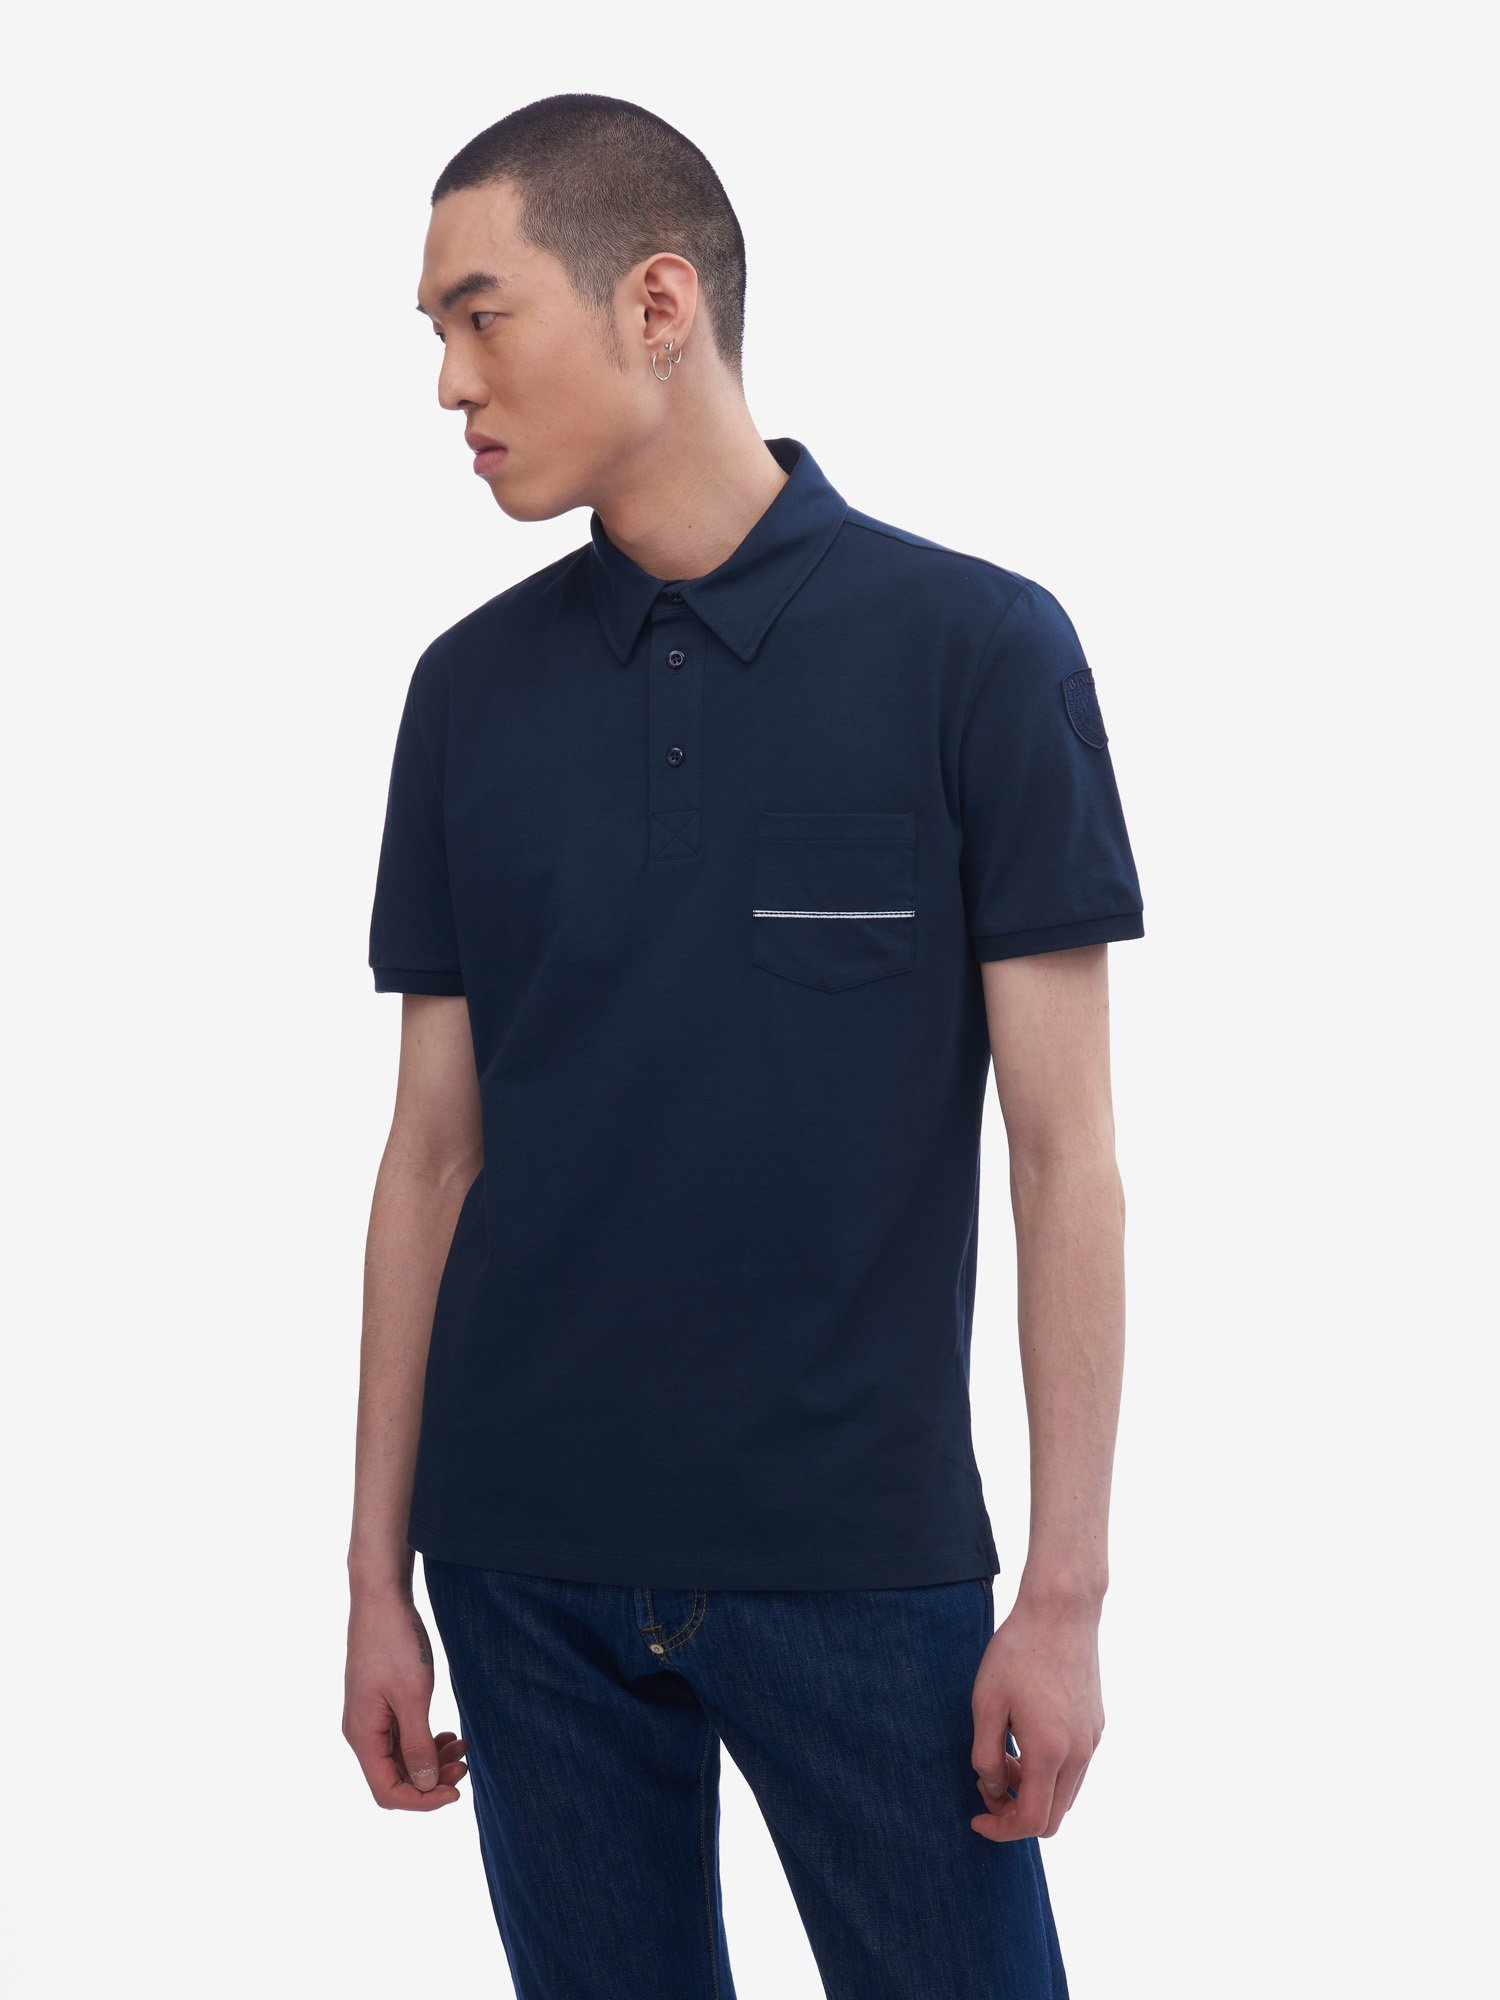 Blauer - POLO SOFT TOUCH - Cadet Blue - Blauer